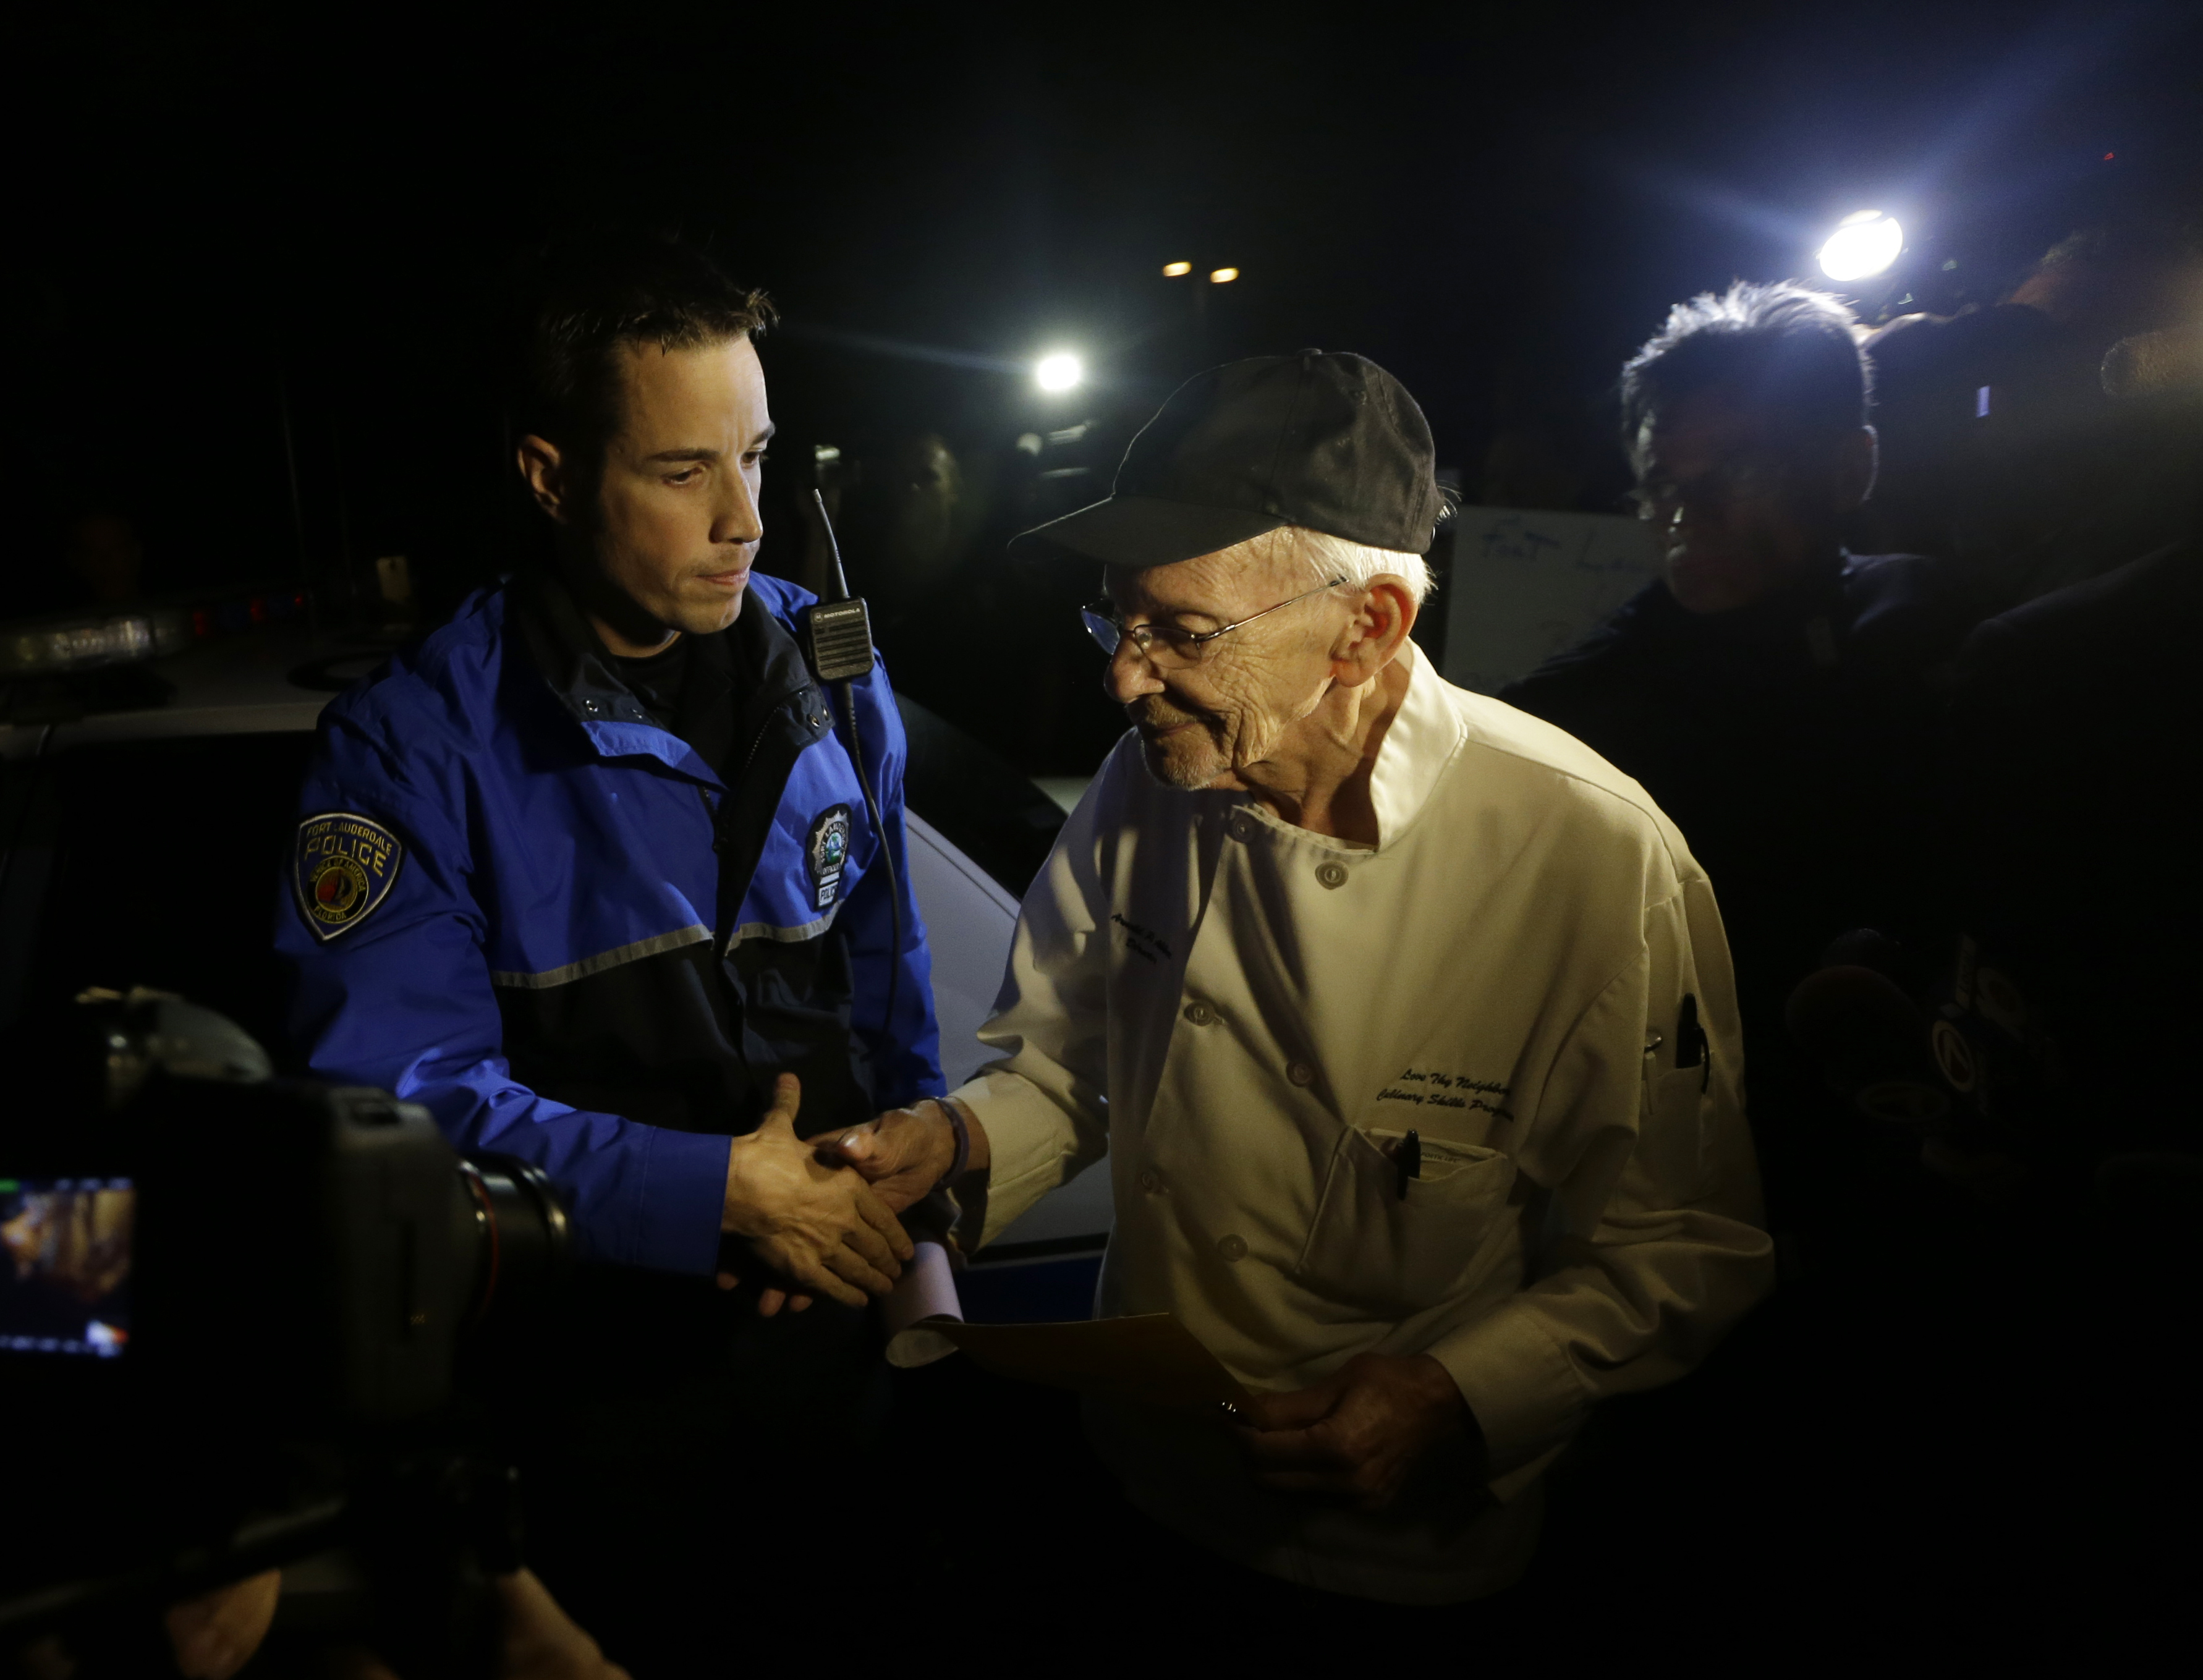 Homeless advocate Arnold Abbott, 90, of the nonprofit group Love Thy Neighbor Inc.,right, shakes hands with a Fort Lauderdale police officer, left, Wednesday, Nov. 5, 2014, in Fort Lauderdale, Fla. Abbott and a group of volunteers were feeding the homeless in a public parking lot next to the beach when he was issued a summons to appear in court for violating an ordinance that limits where charitable groups can feed the homeless on public property.